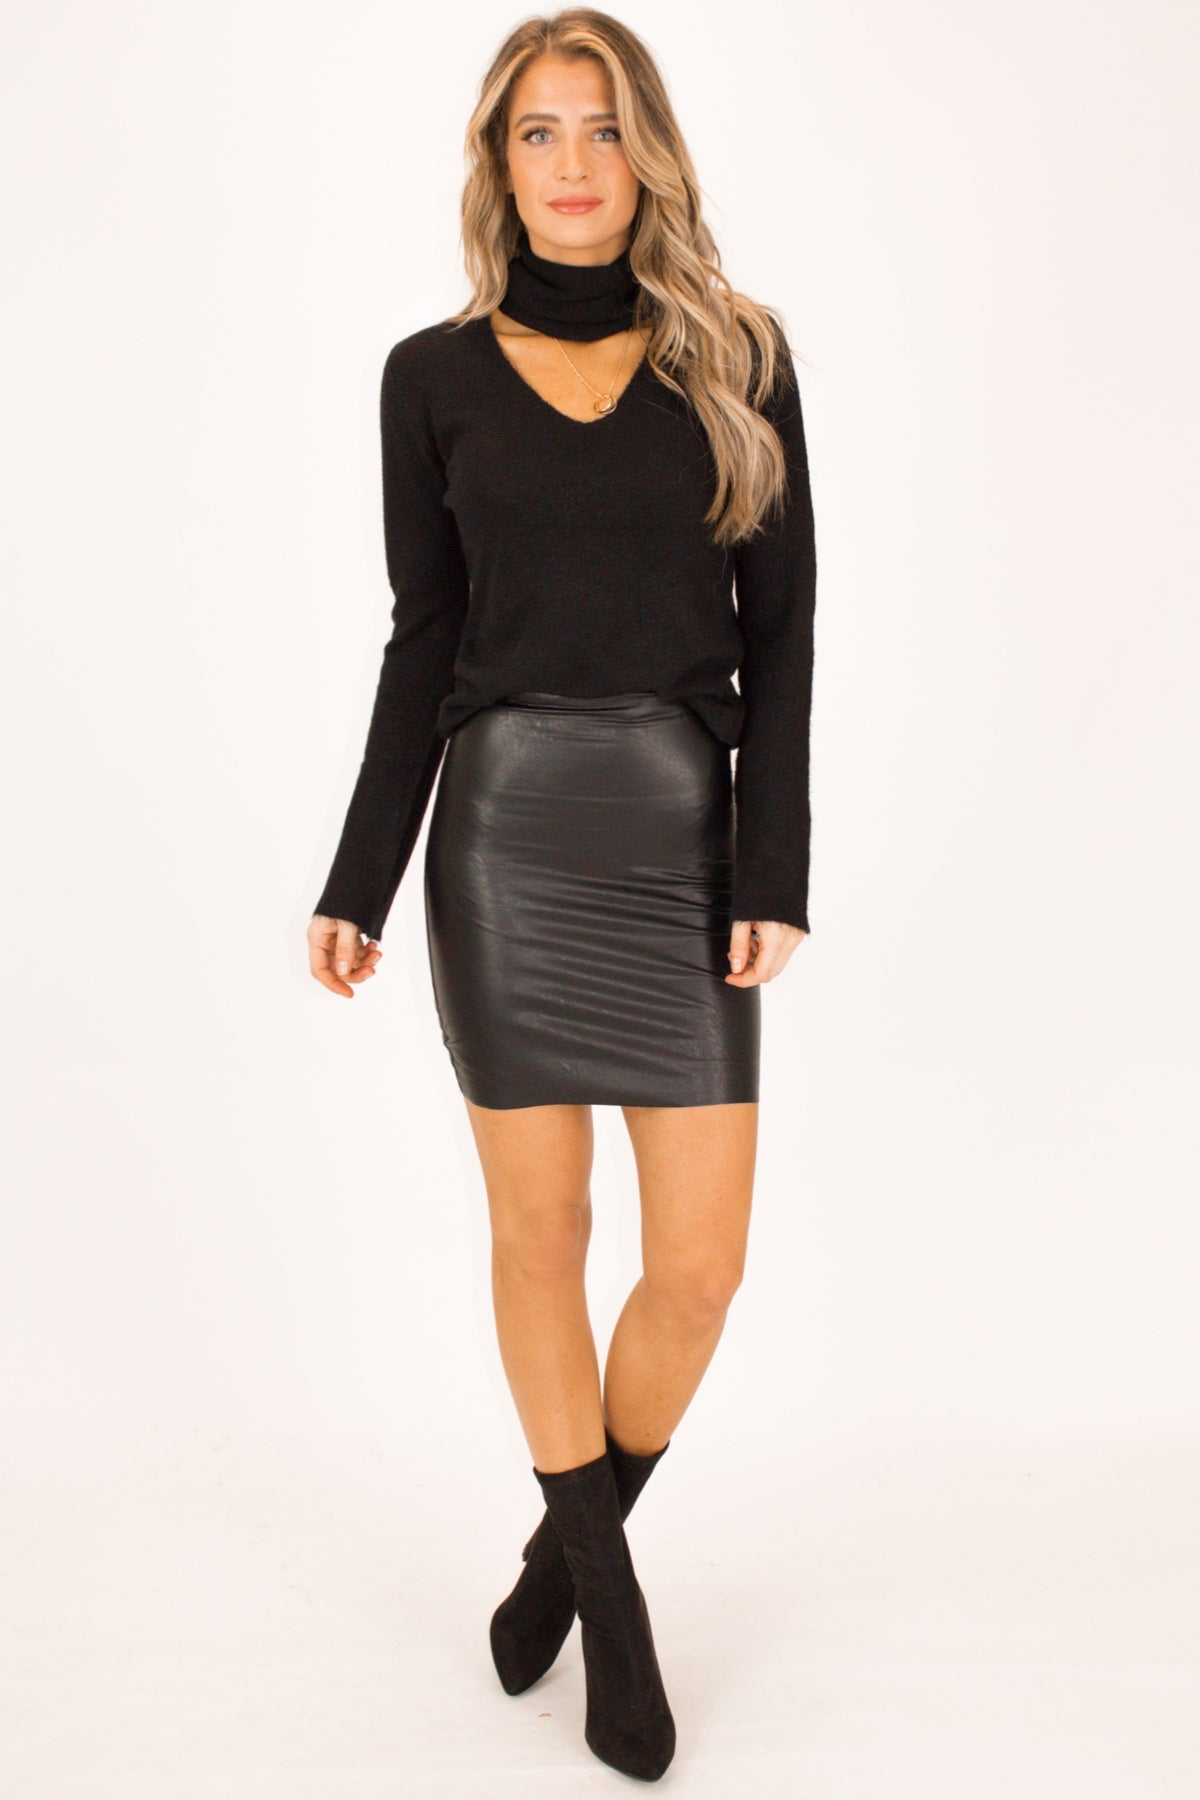 FUZZY DETACHABLE CHOKER SWEATER IN BLACK